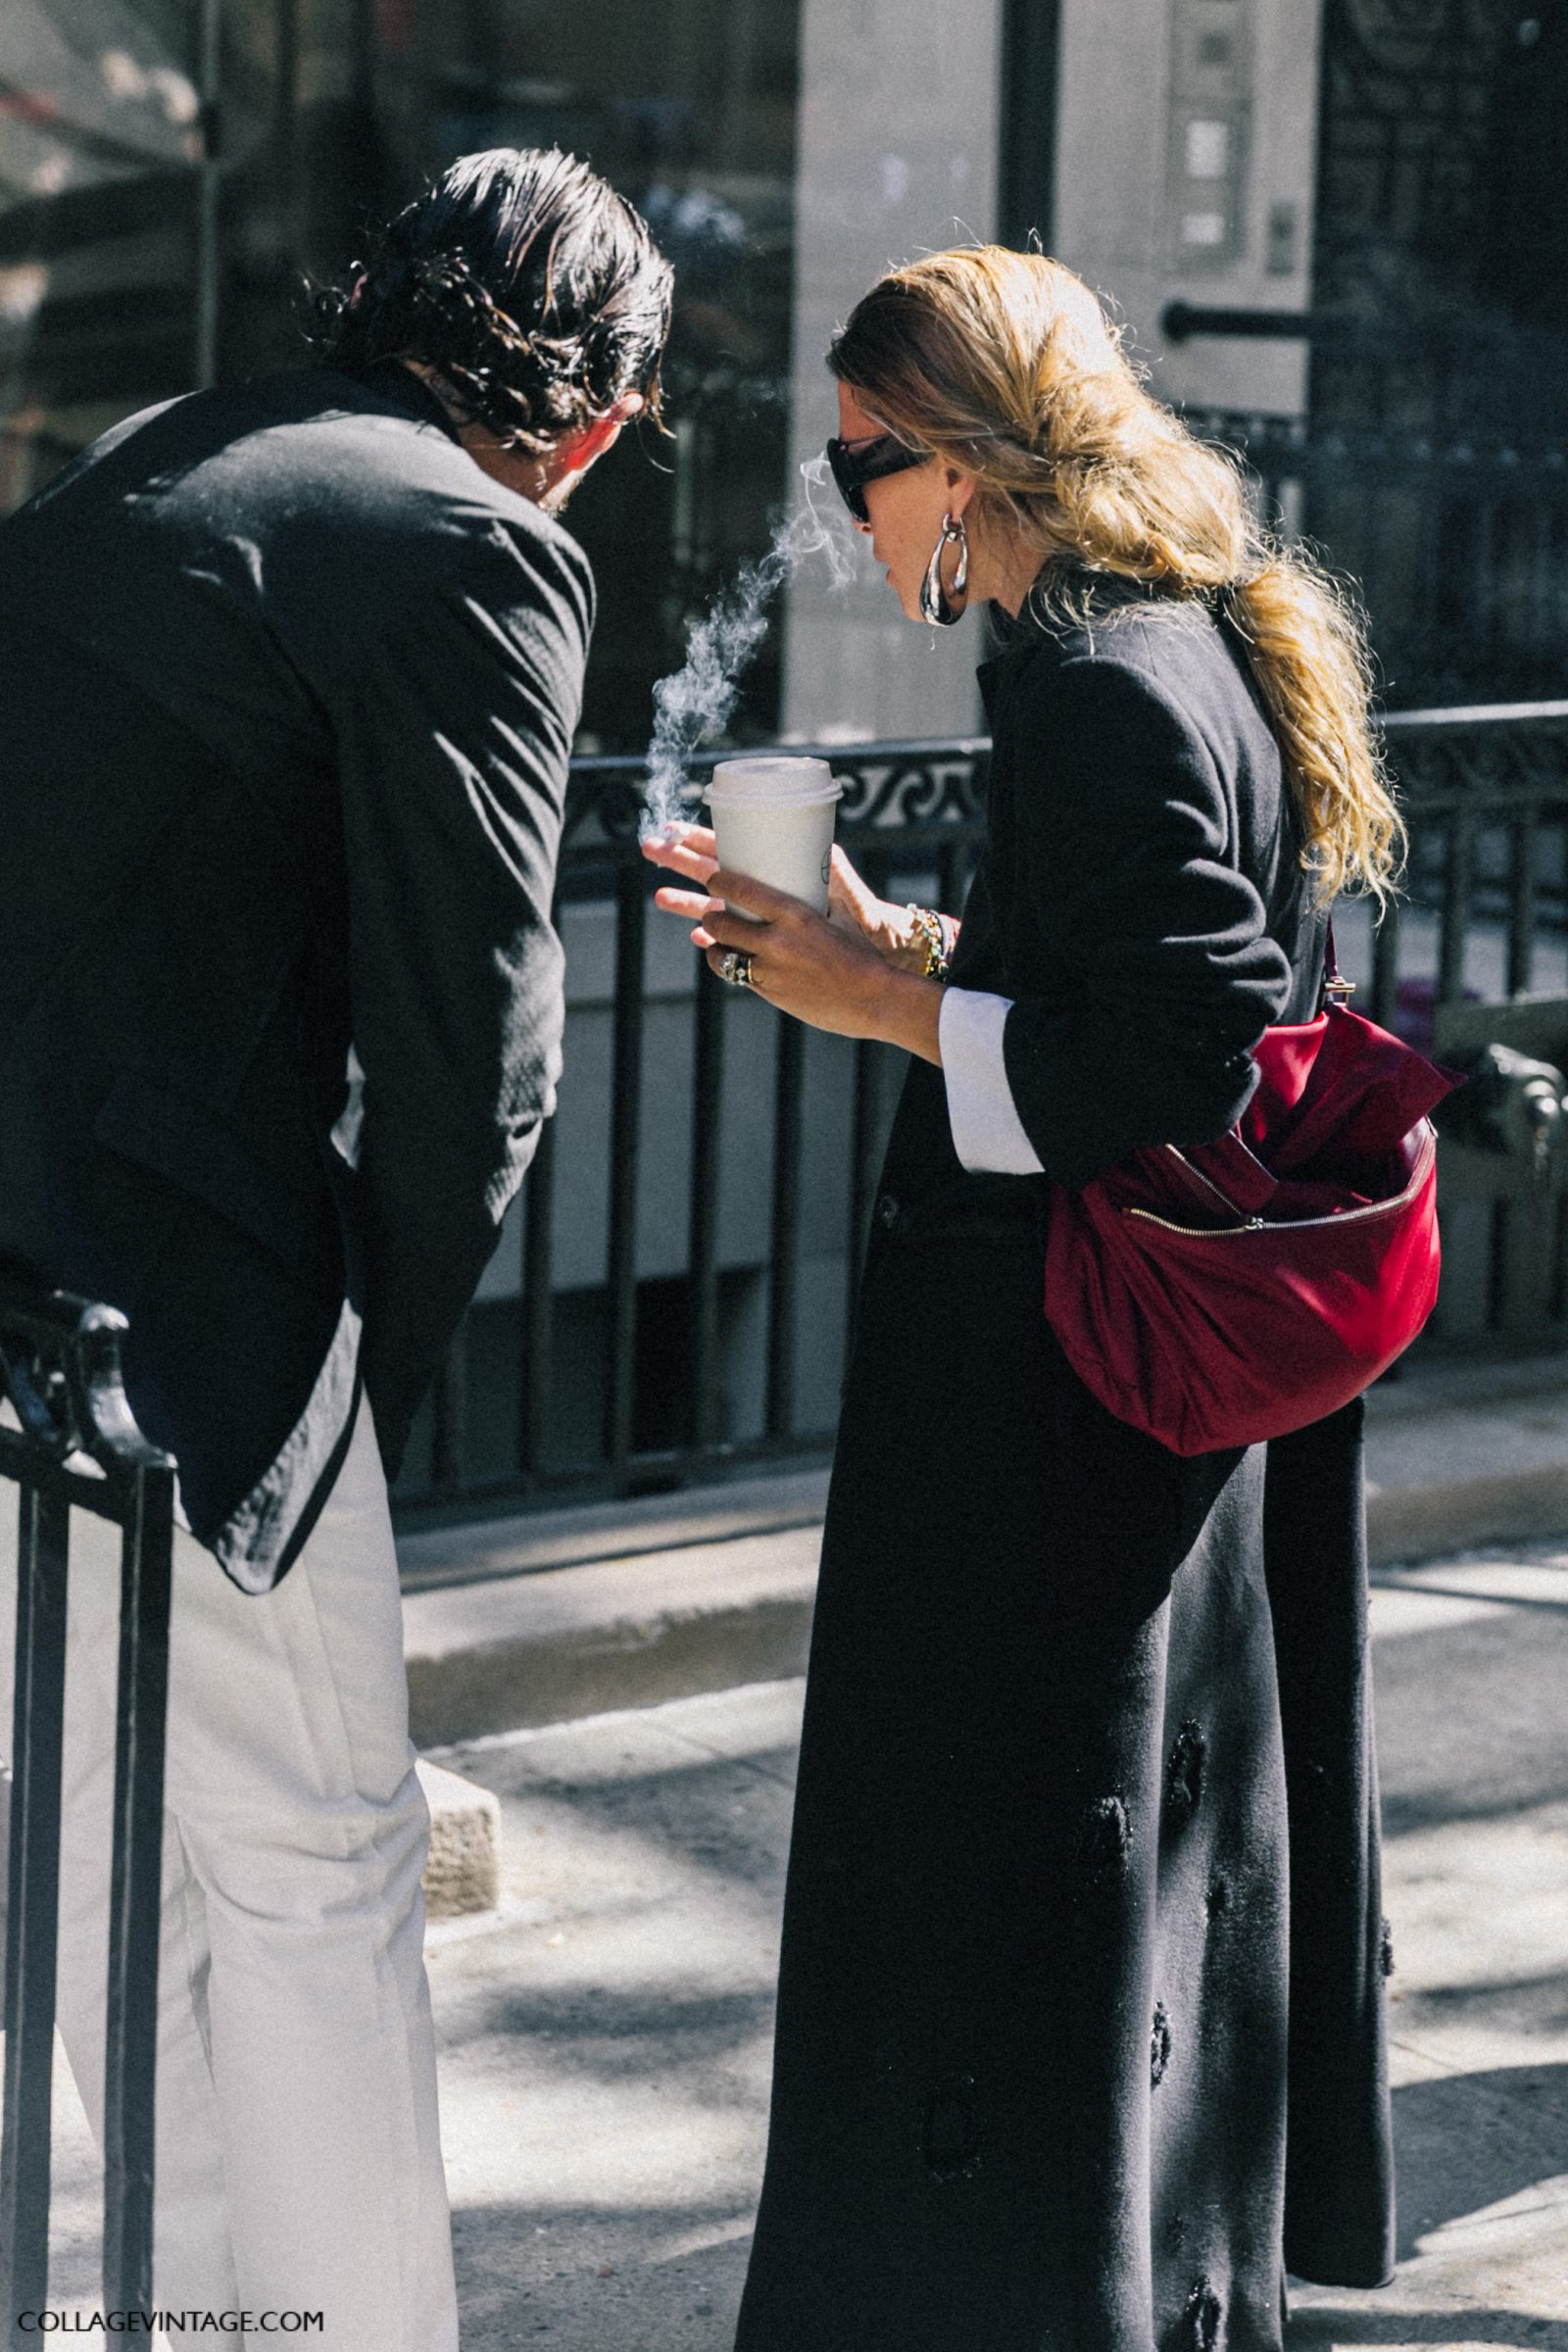 nyfw-new_york_fashion_week_ss17-street_style-outfits-collage_vintage-vintage-phillip_lim-the-row-proenza_schouler-rossie_aussolin-48